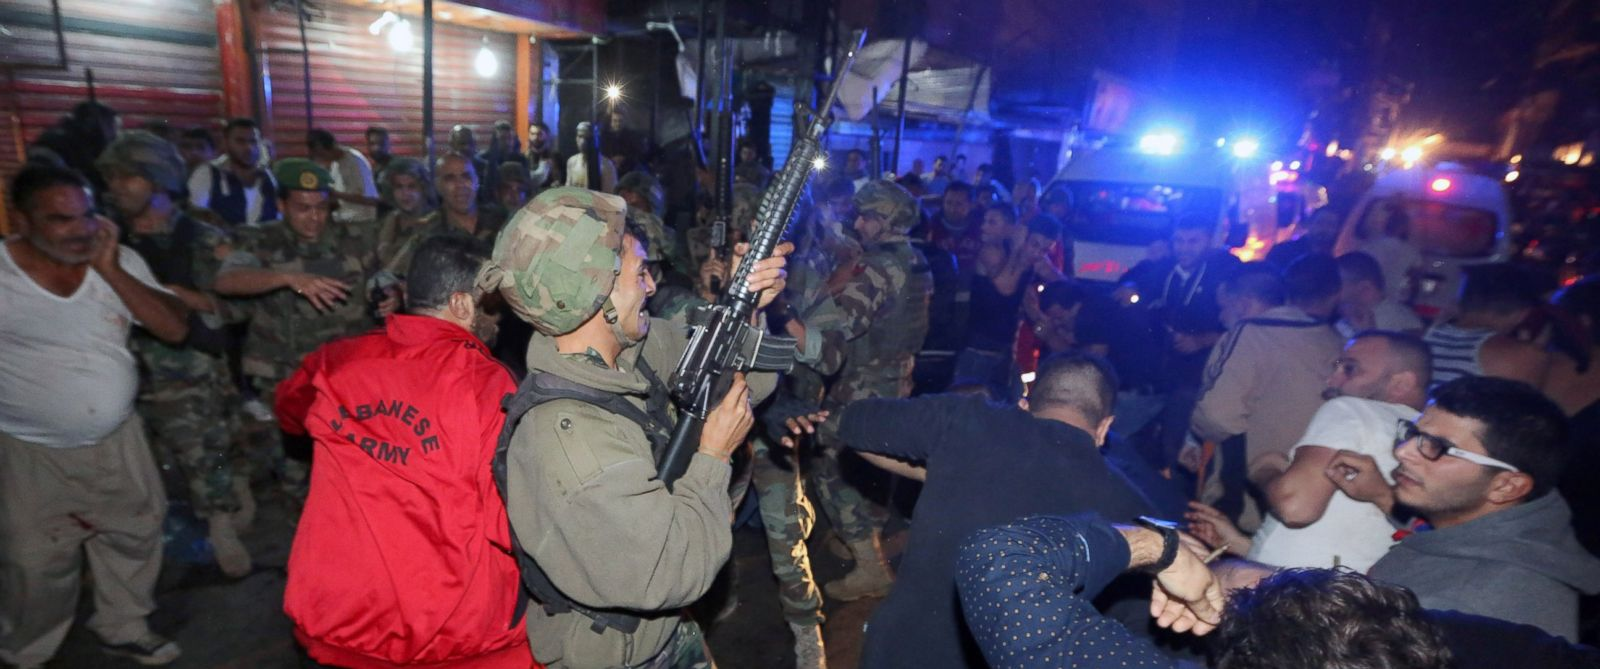 PHOTO: A Lebanese soldier opens fire into the air to disperse people who gathered around a man (on the ground) whom they claimed was a suspected attacker in Burj al-Barajneh, southern Beirut, Lebanon, Nov. 12, 2015.